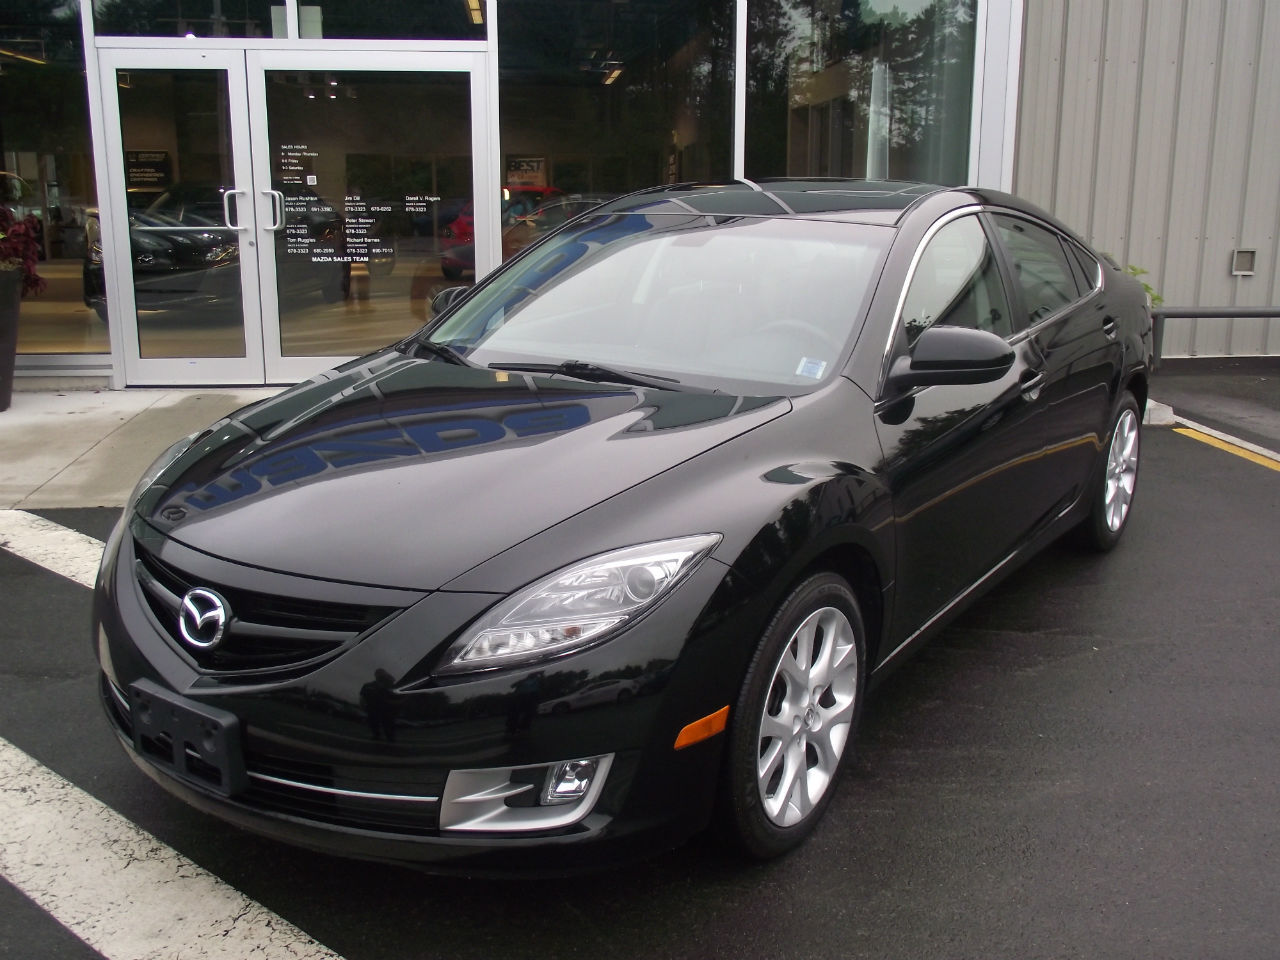 used 2009 mazda mazda6 gt in new germany used inventory lake view auto in new germany nova. Black Bedroom Furniture Sets. Home Design Ideas